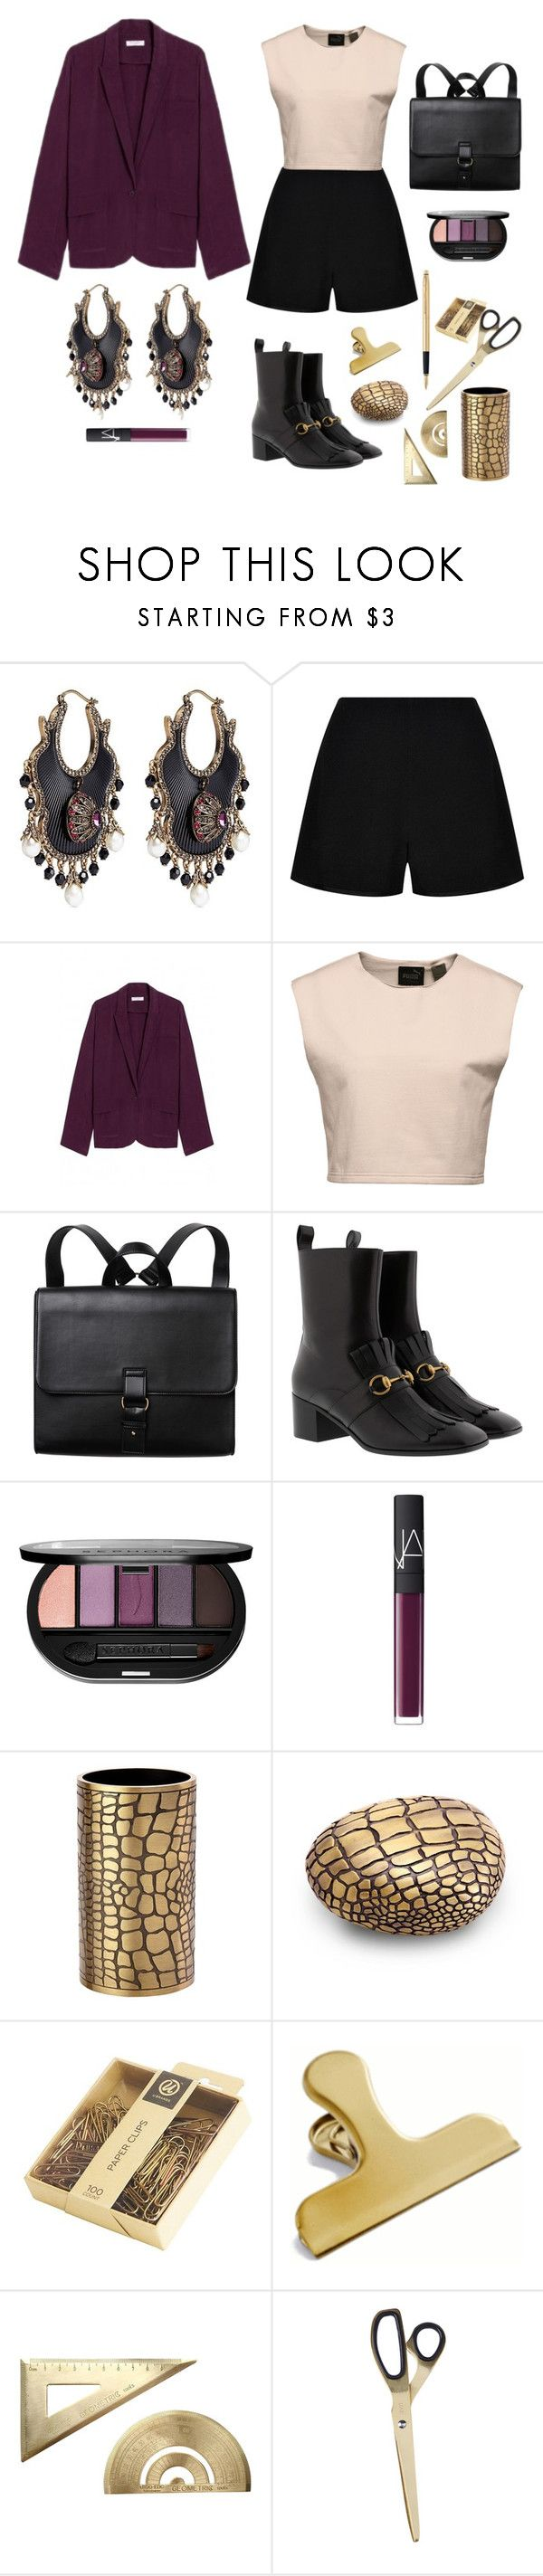 """Casual Friday"" by loveleelove ❤ liked on Polyvore featuring Alexander McQueen, Reiss, Equipment, Puma, Monki, Gucci, Sephora Collection, NARS Cosmetics, L'Objet and Fountain"